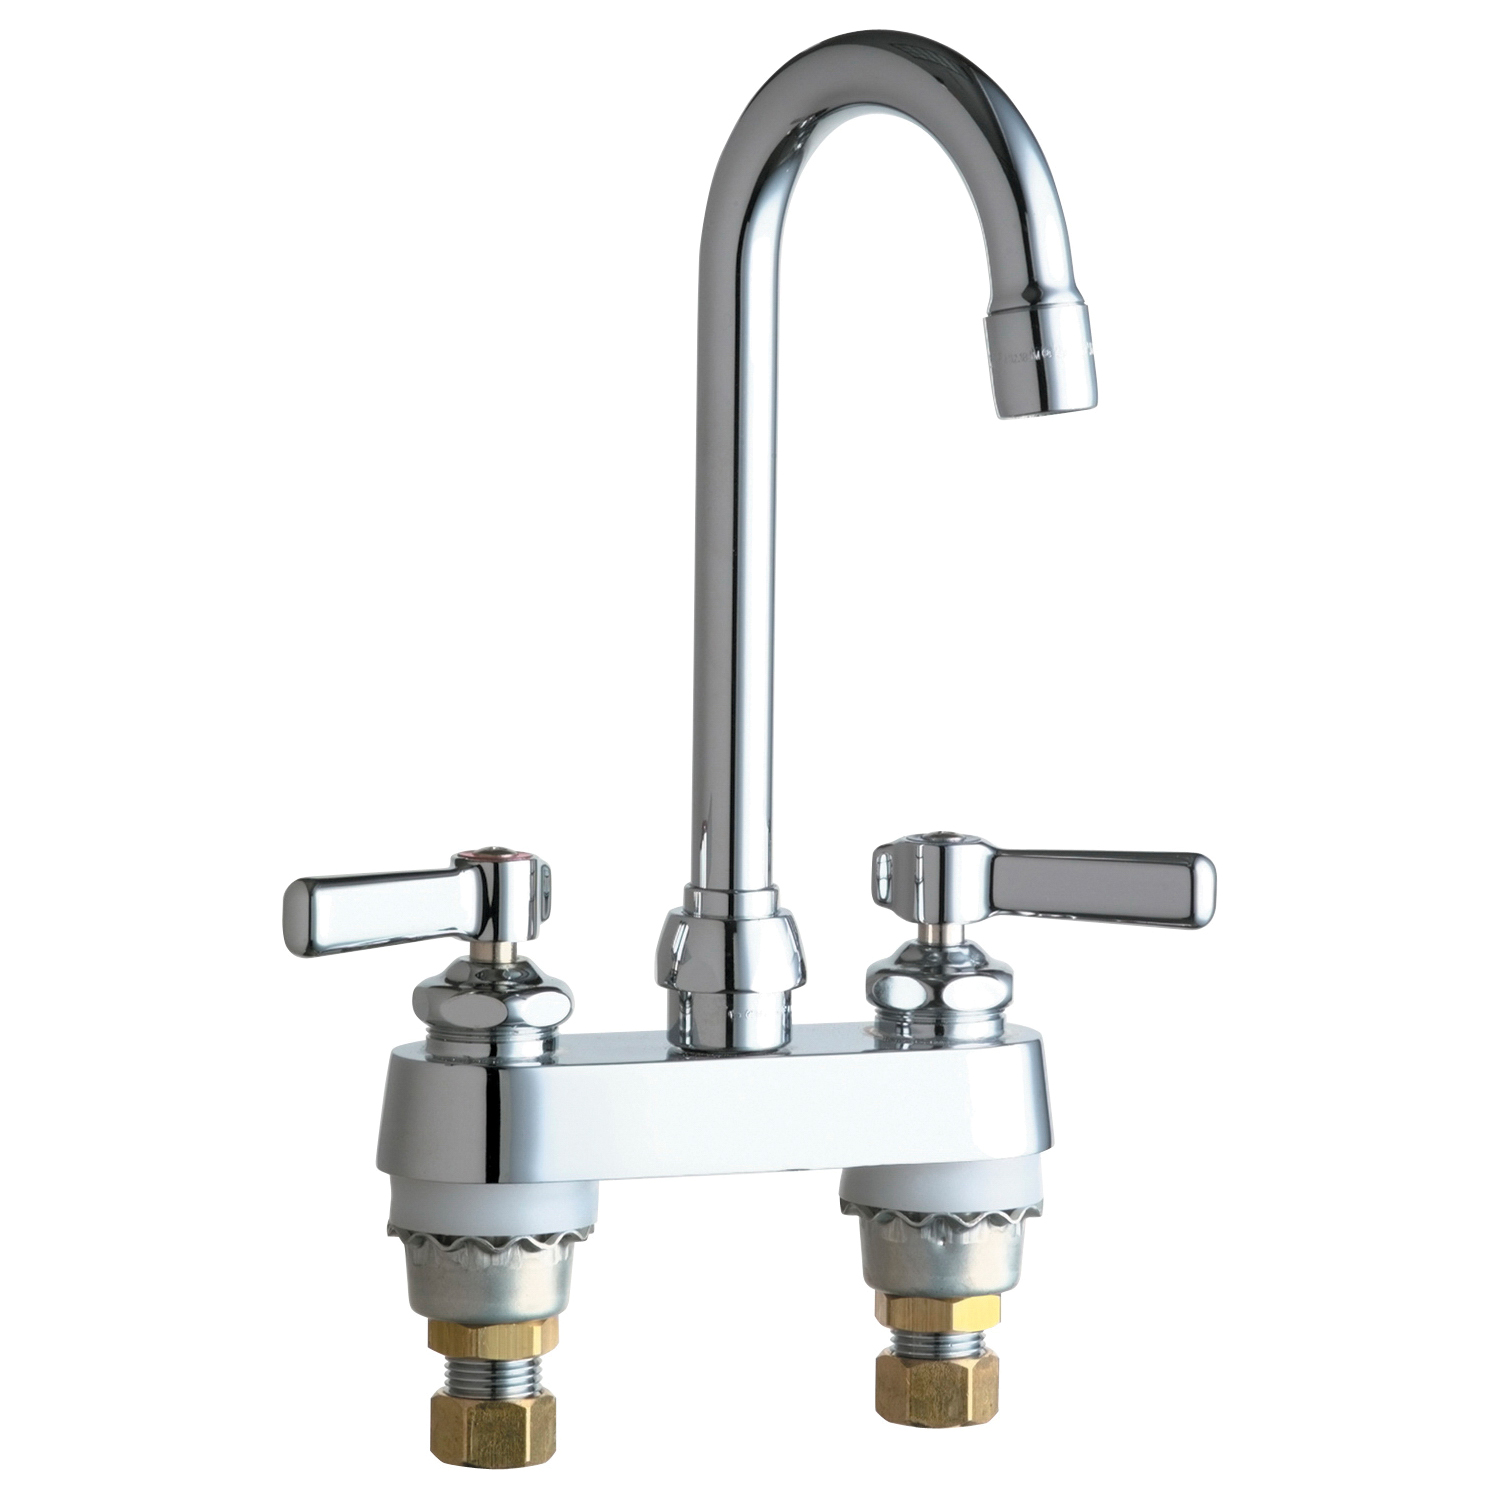 Chicago Faucet® 895-ABCP Lavatory Sink Faucet, Chrome Plated, 2 Handles, 2.2 gpm